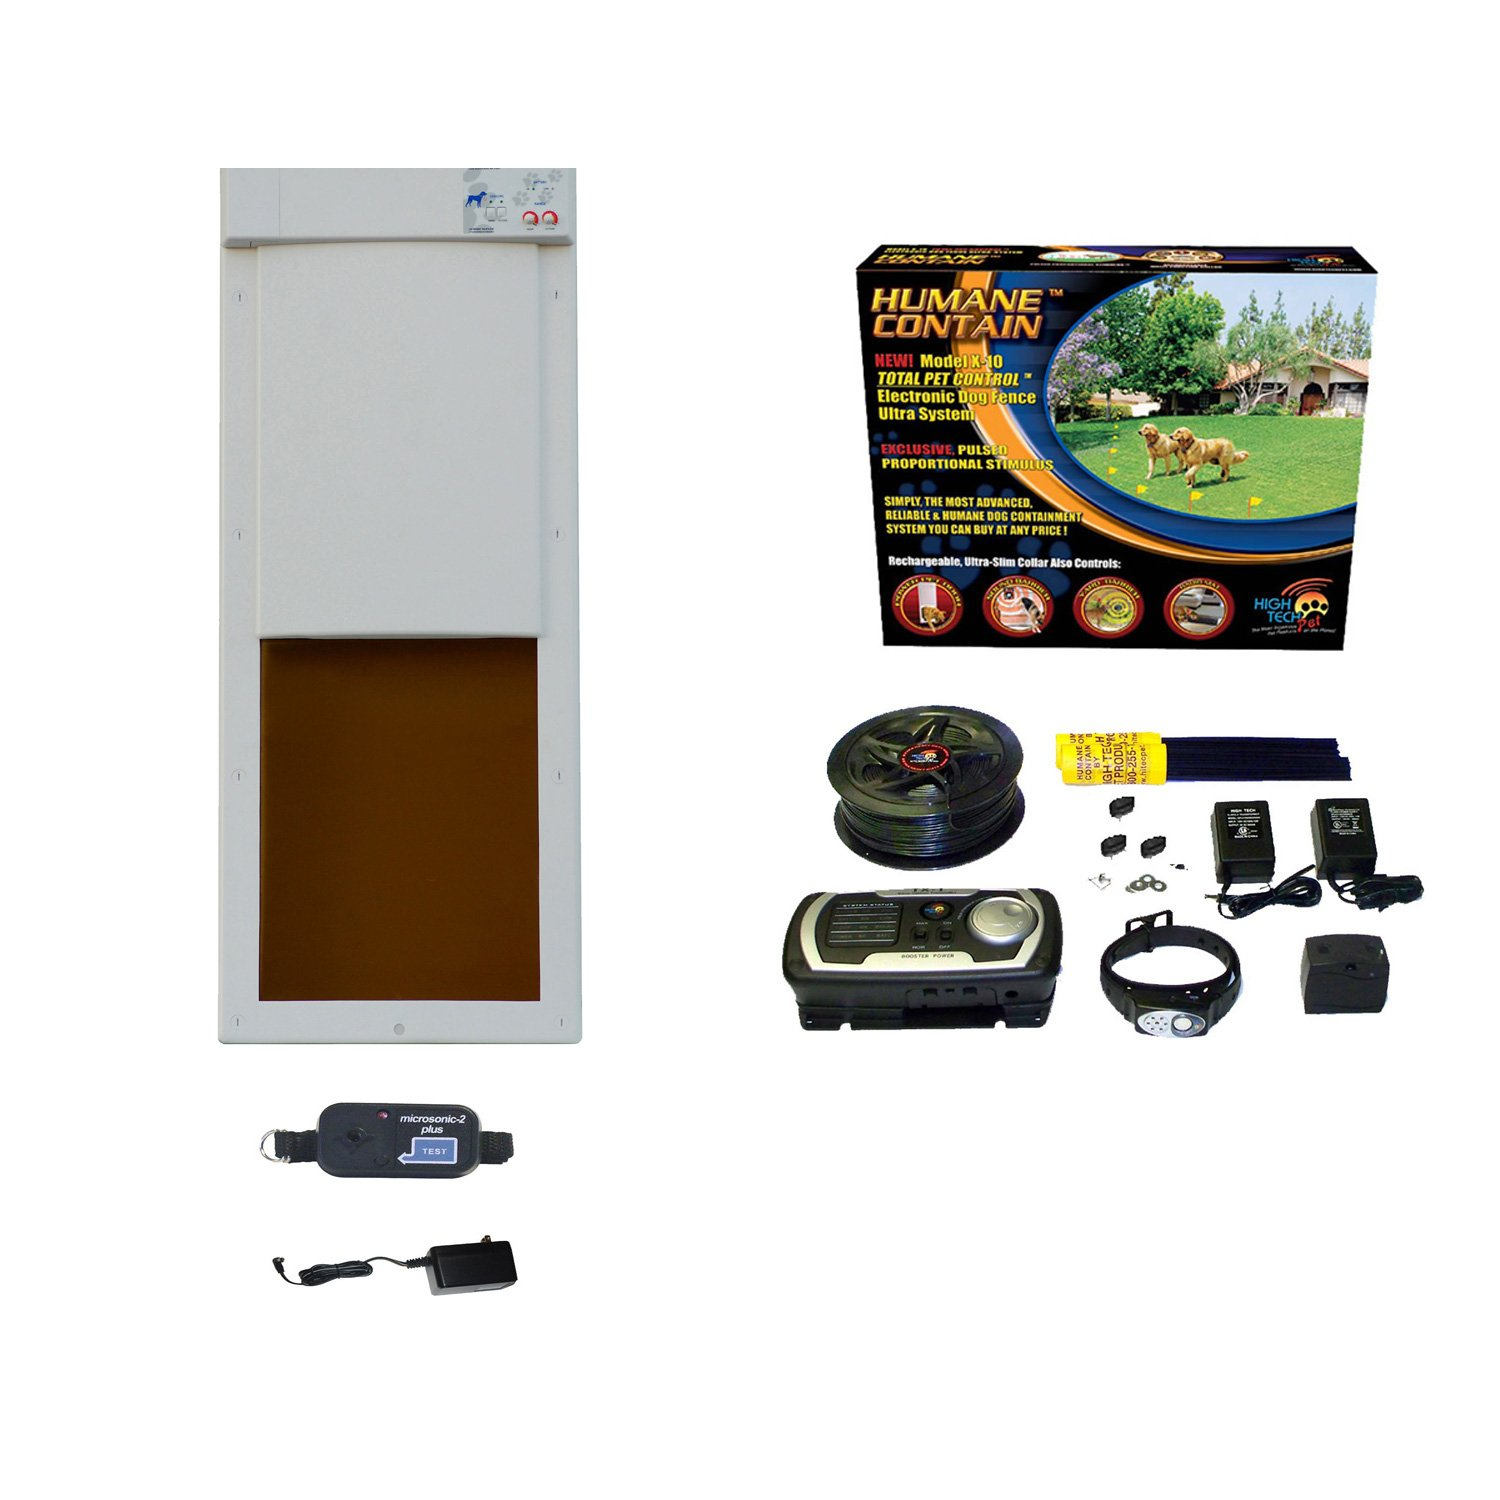 High Tech Pet Humane Contain X-10 In Ground Pet Fencing System with Power Pet PX-2 Pet Door